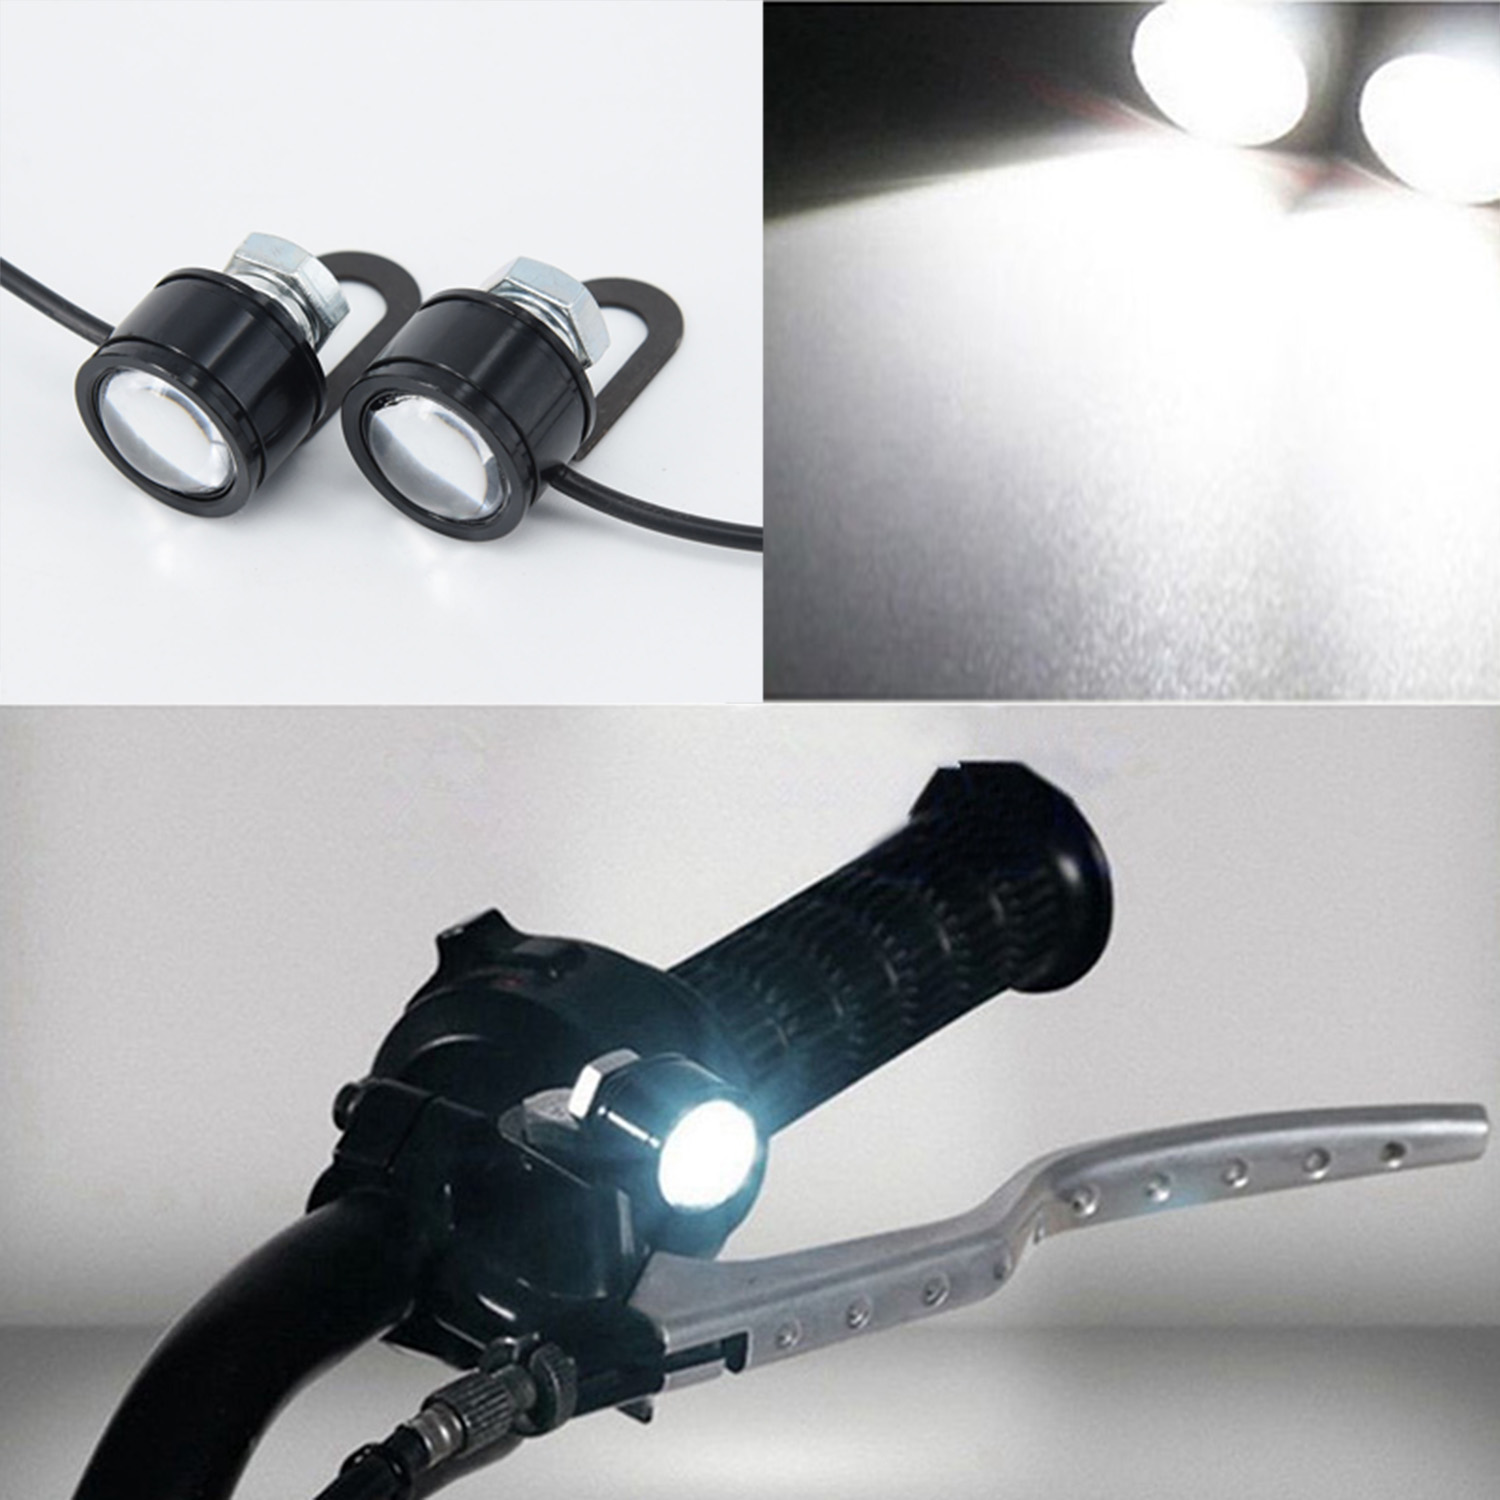 Universal 2 PCS Motorcycle LED Headlight Motorbike Driving Spotlight Street Moto Fog Spot Head Light Lamp Electric Motorcycle